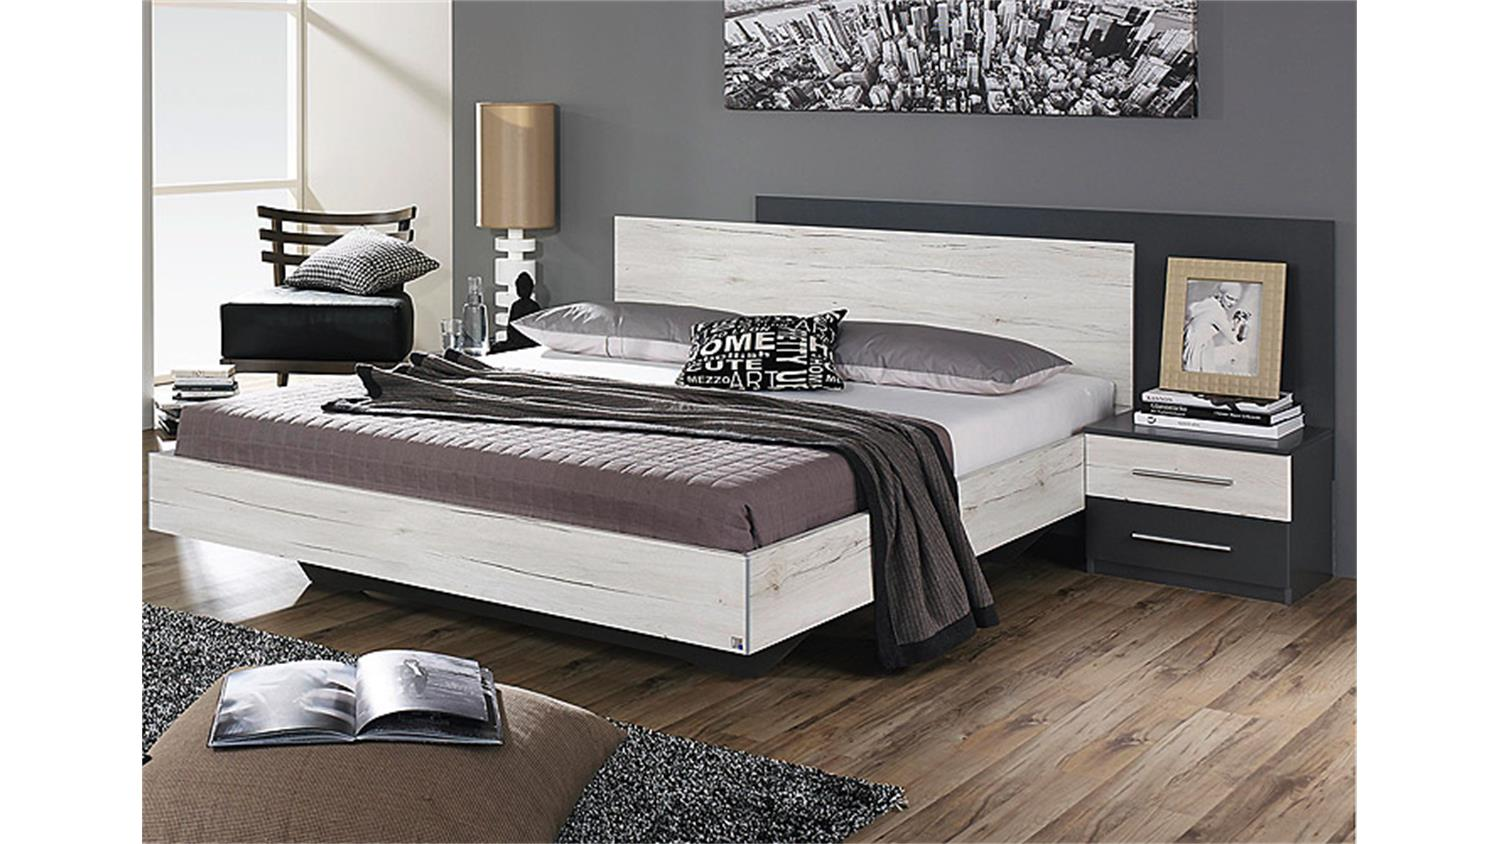 schlafzimmer grau. Black Bedroom Furniture Sets. Home Design Ideas